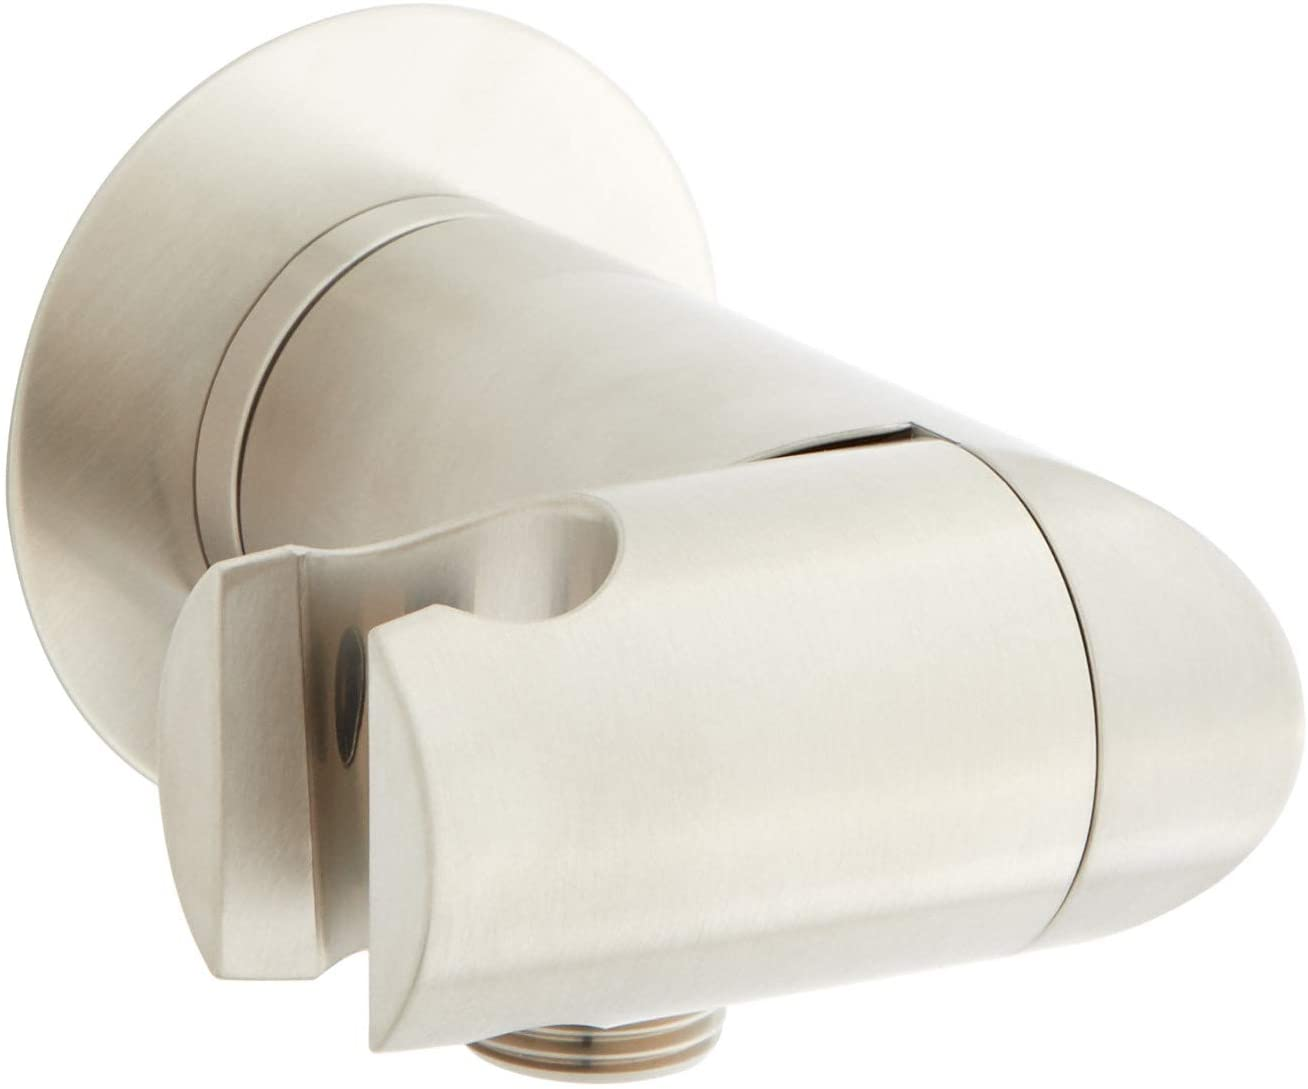 Signature Hardware 948936 Swivel Water Supply Elbow and Bracket for Hand Shower